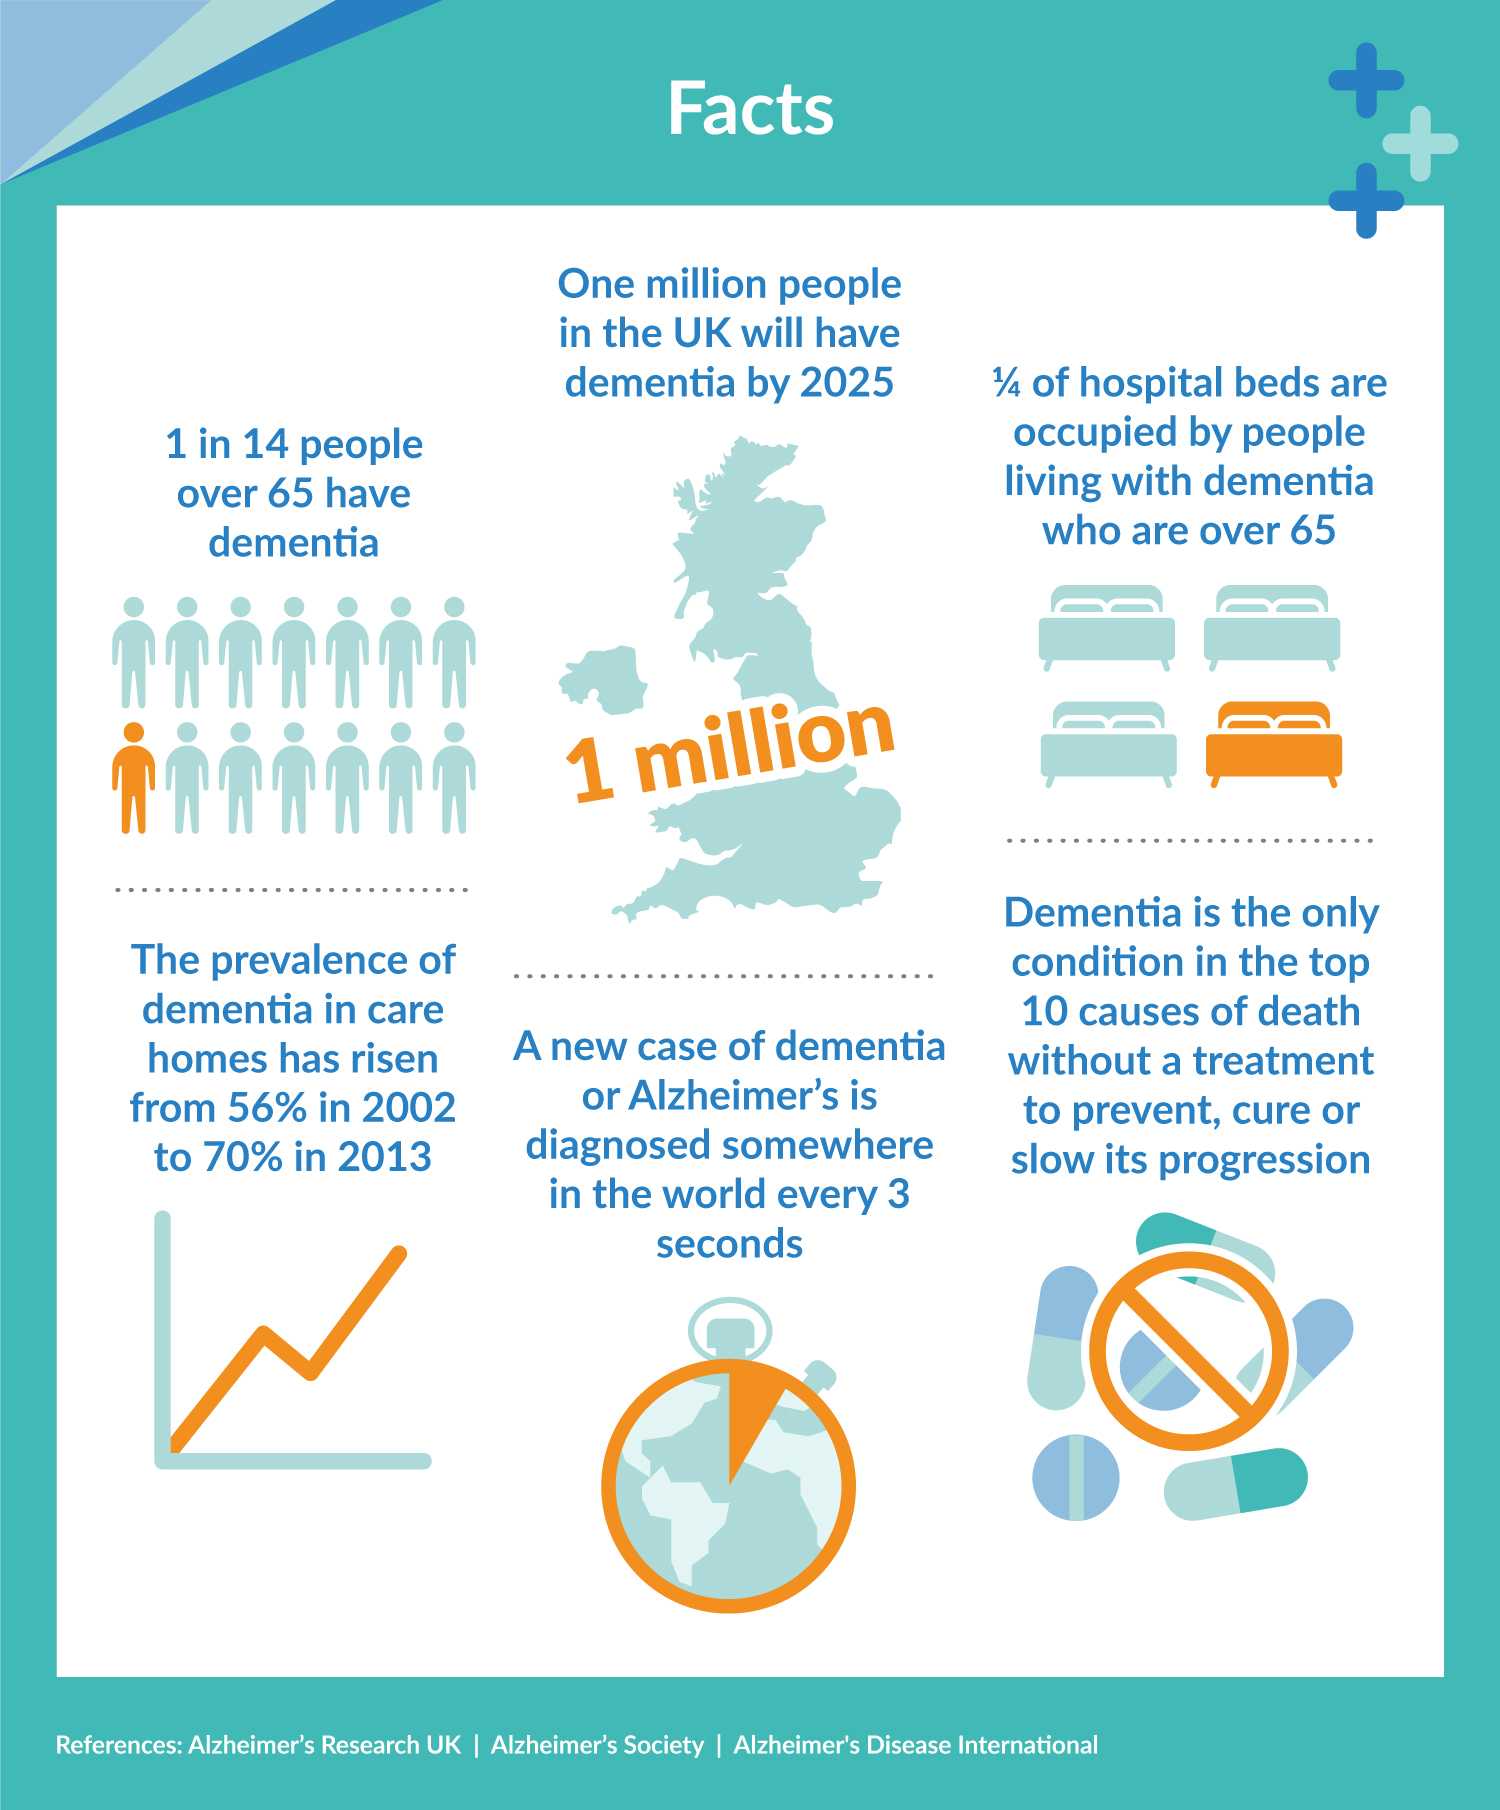 Facts about Alzheimer's and dementia